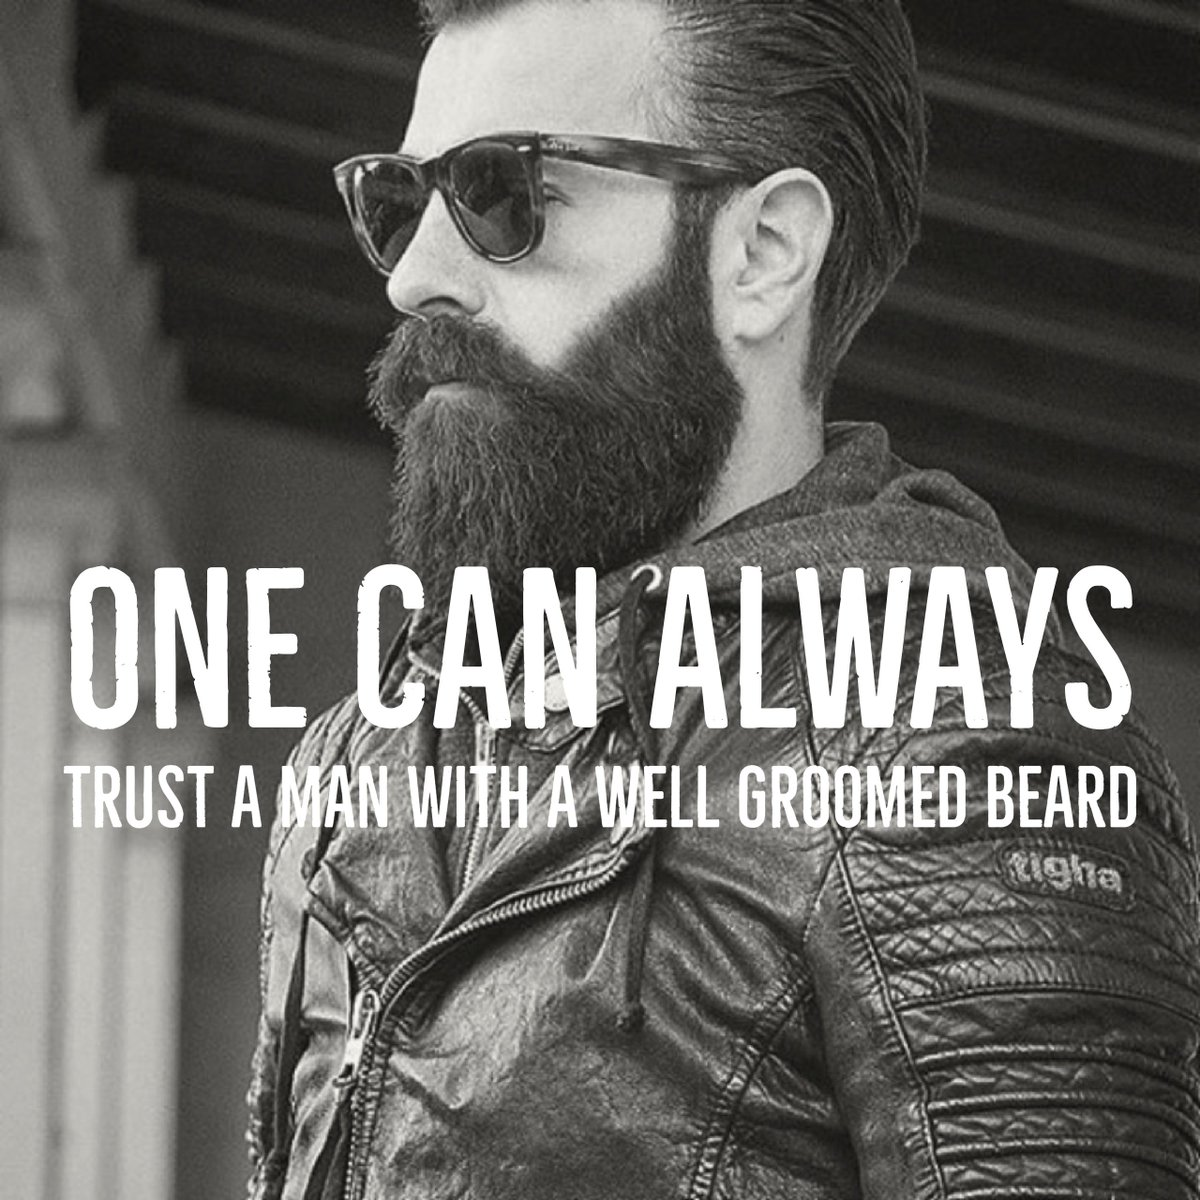 Essential Beards On Twitter One Can Always Trust A Man With A Well Groomed Beard Essentialbeards Beard Bearduk Quotes